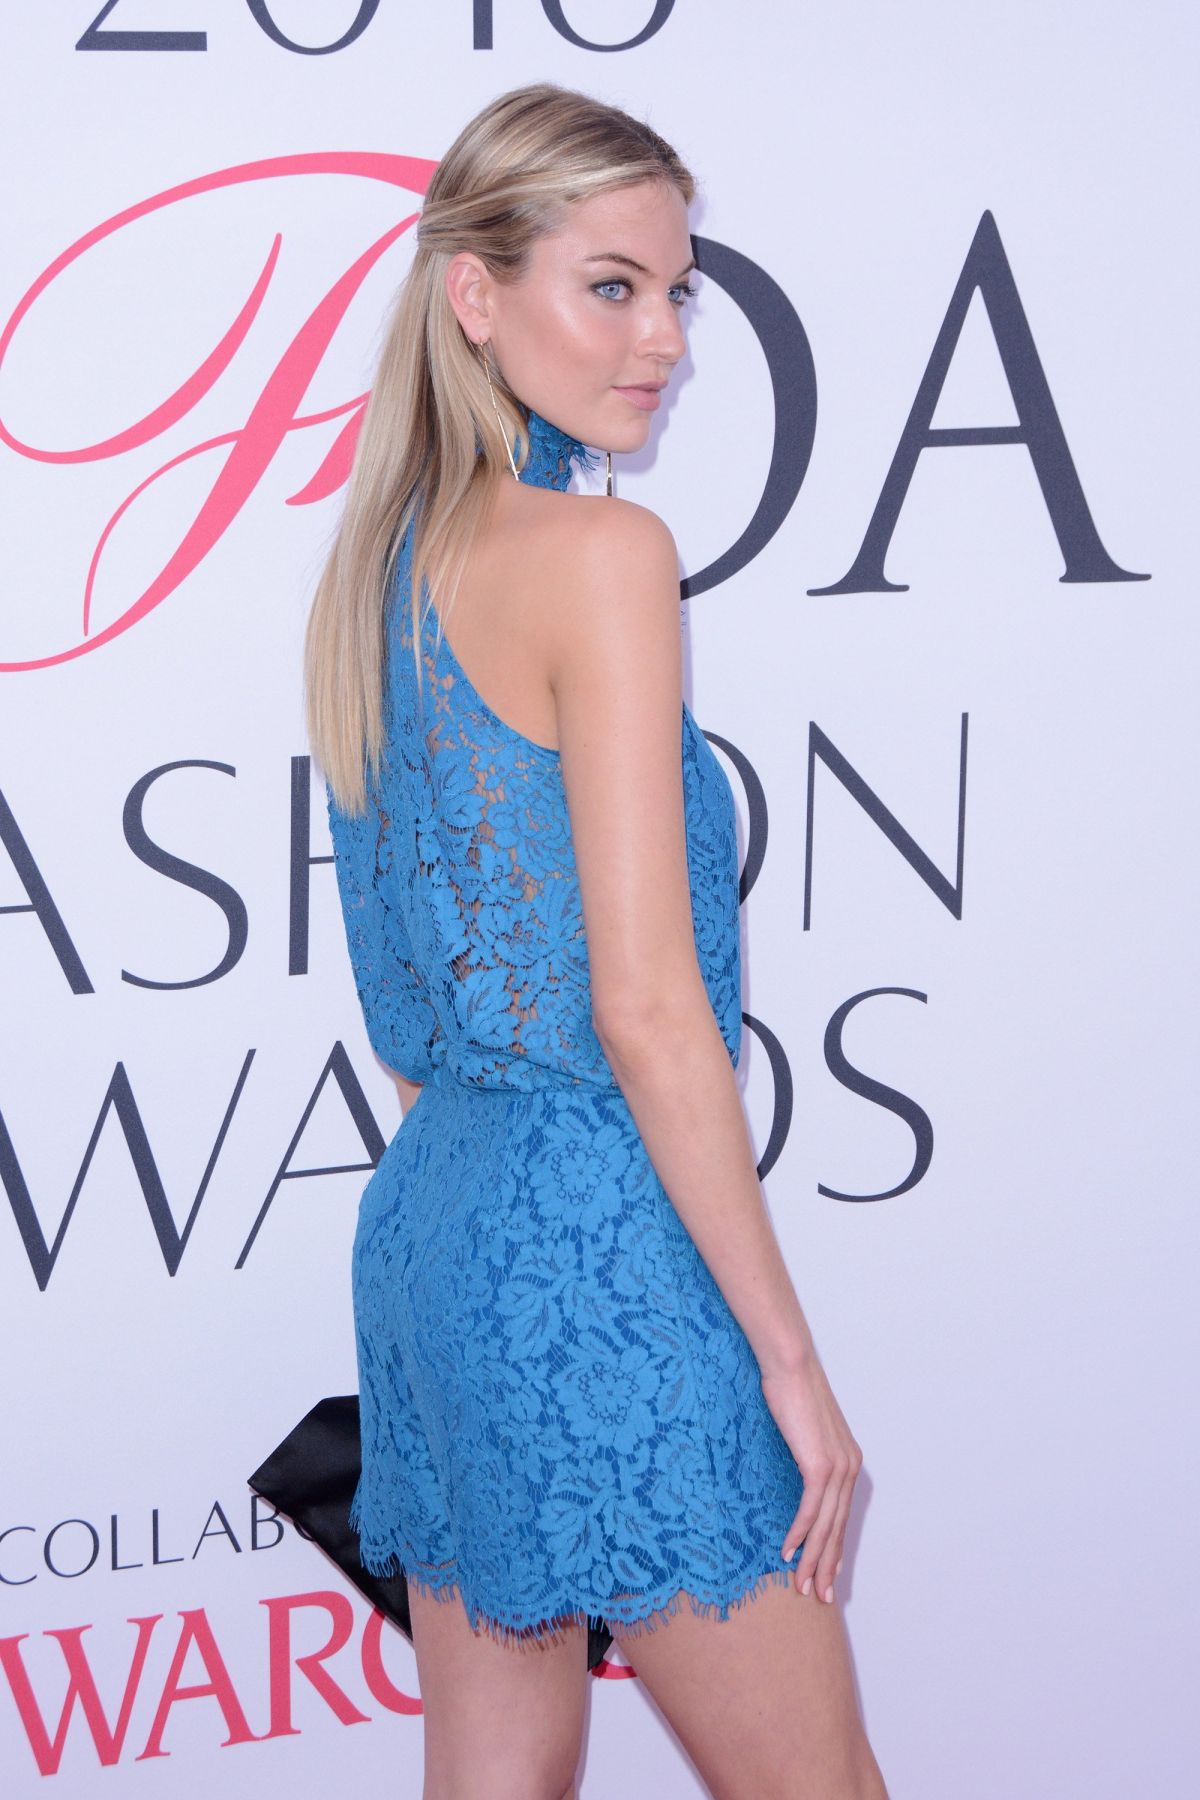 MARTHA HUNT at CFDA Fashion Awards in New York 06/06/2016